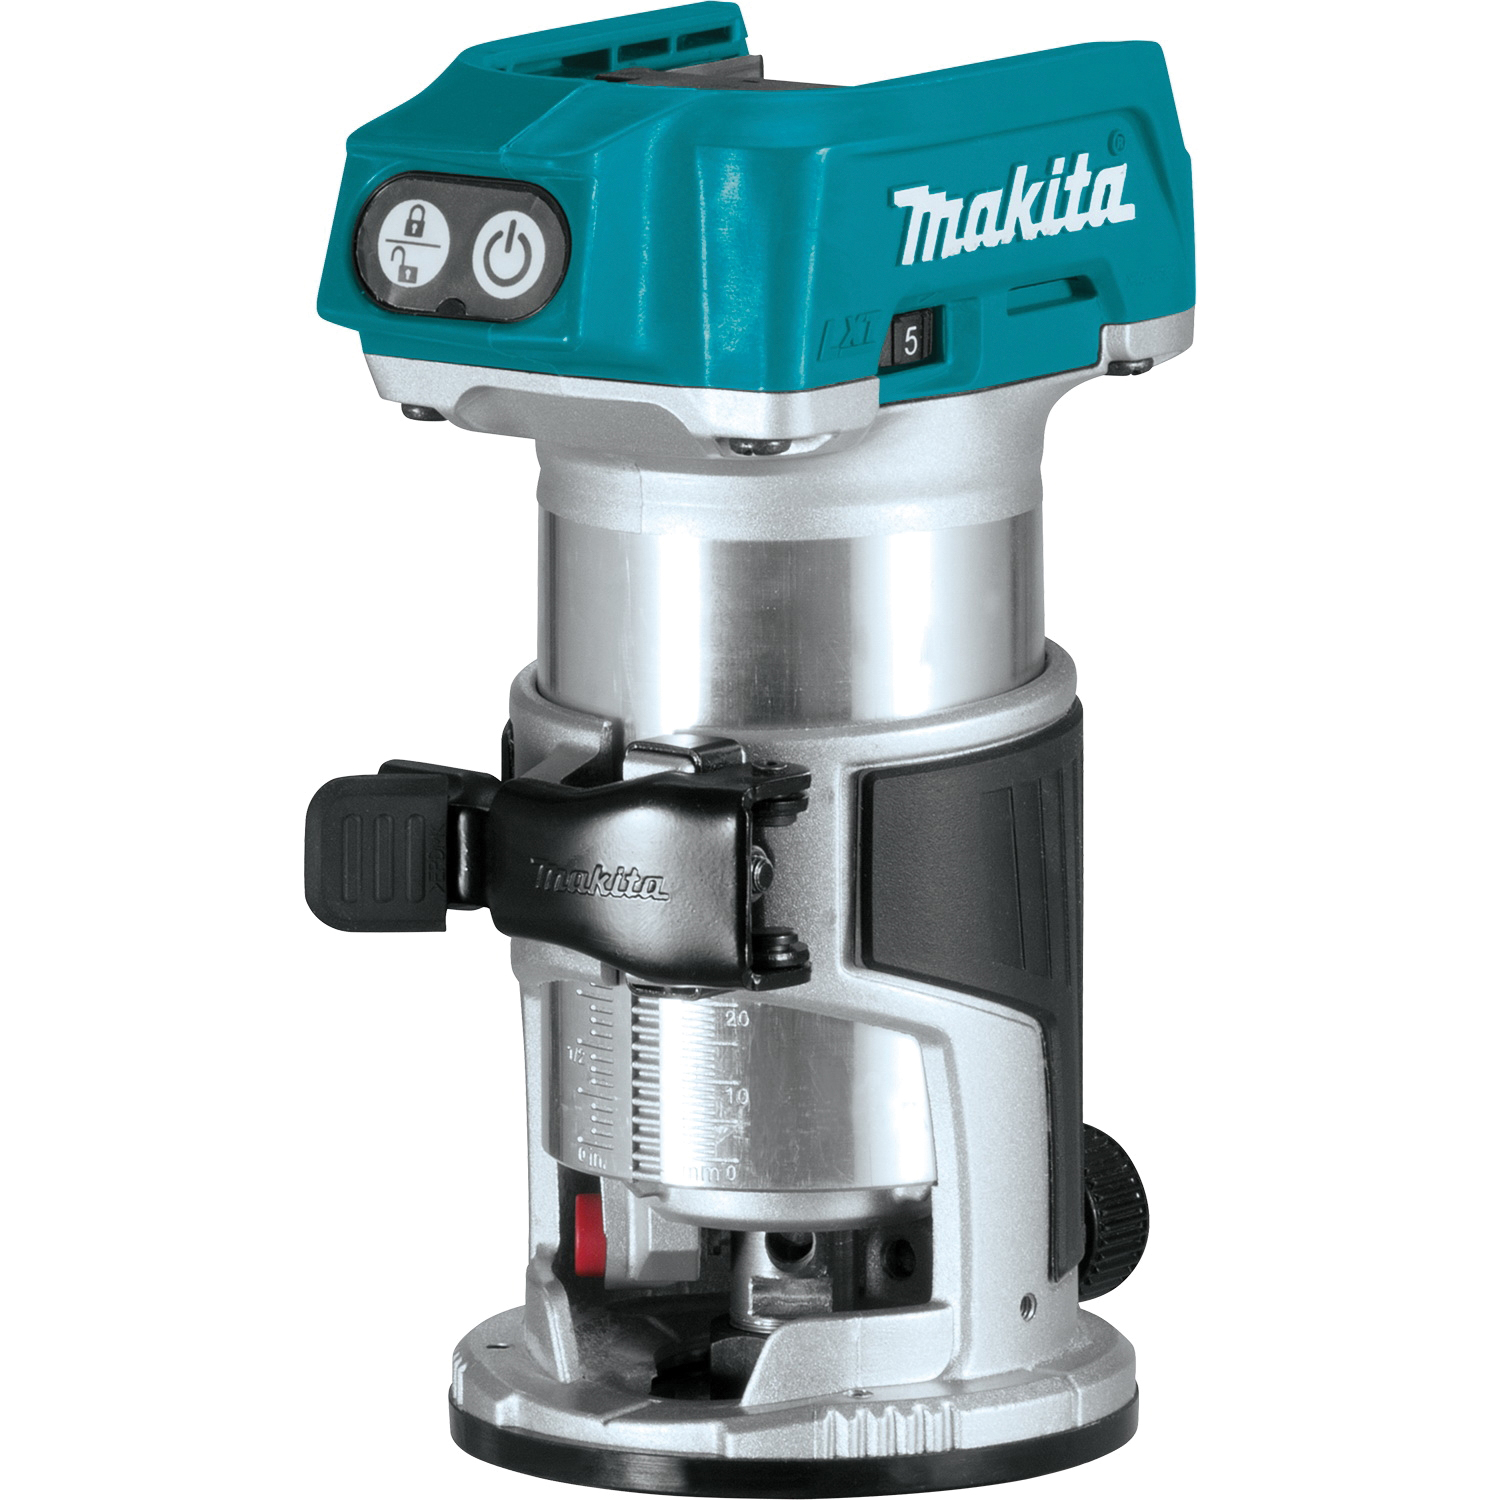 Picture of Makita XTR01Z Compact Router, 18 V, 10,000 to 30,000 rpm Spindle